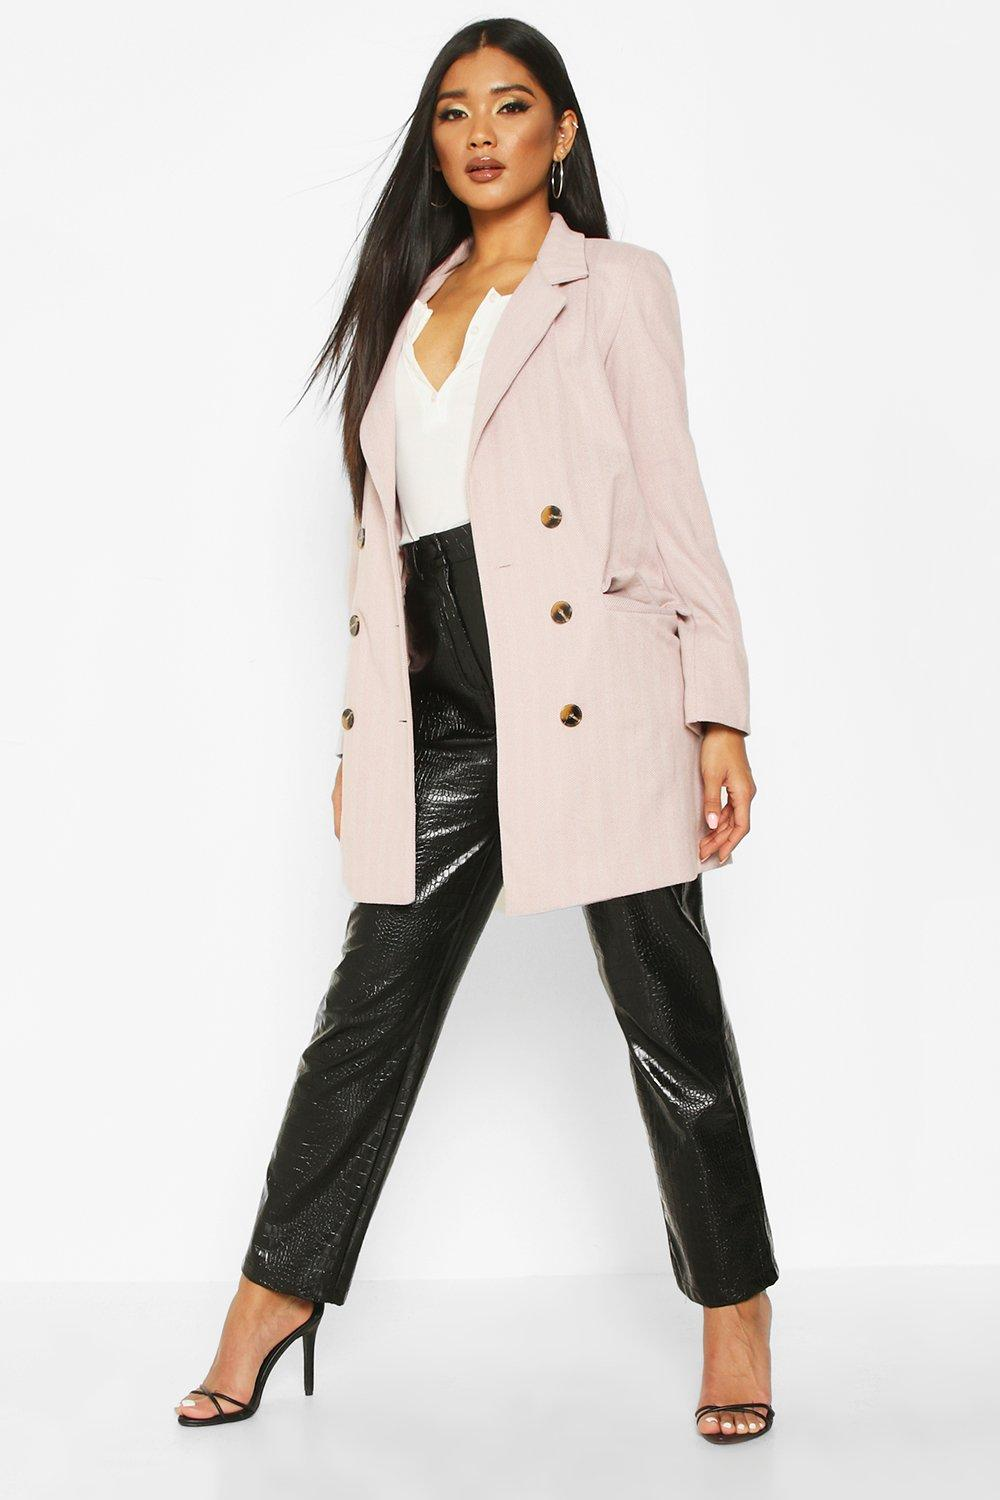 boohoo Womens Herringbone Double Breasted Wool Look Coat - Pink - 12, Pink